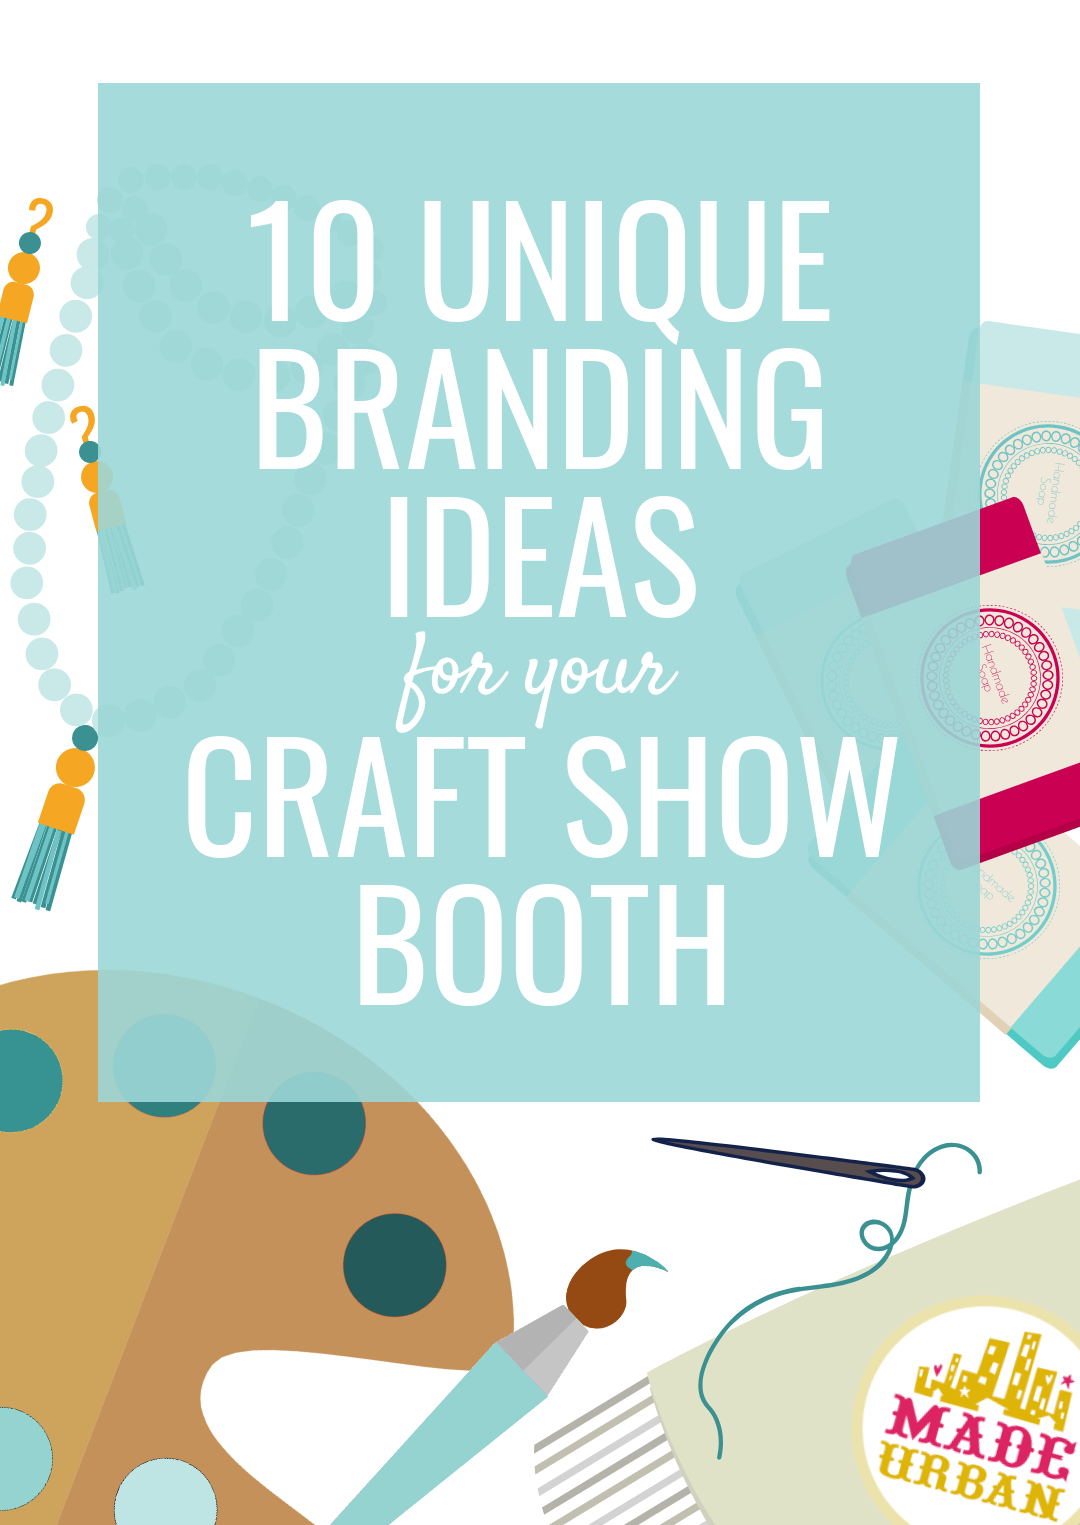 How to create a unique experience for your shoppers, no matter what you sell or how big or small of space you sell it in. These ideas will help you stand out at a craft show, draw shoppers over, convert more shoppers into customers and help shoppers remember your brand.